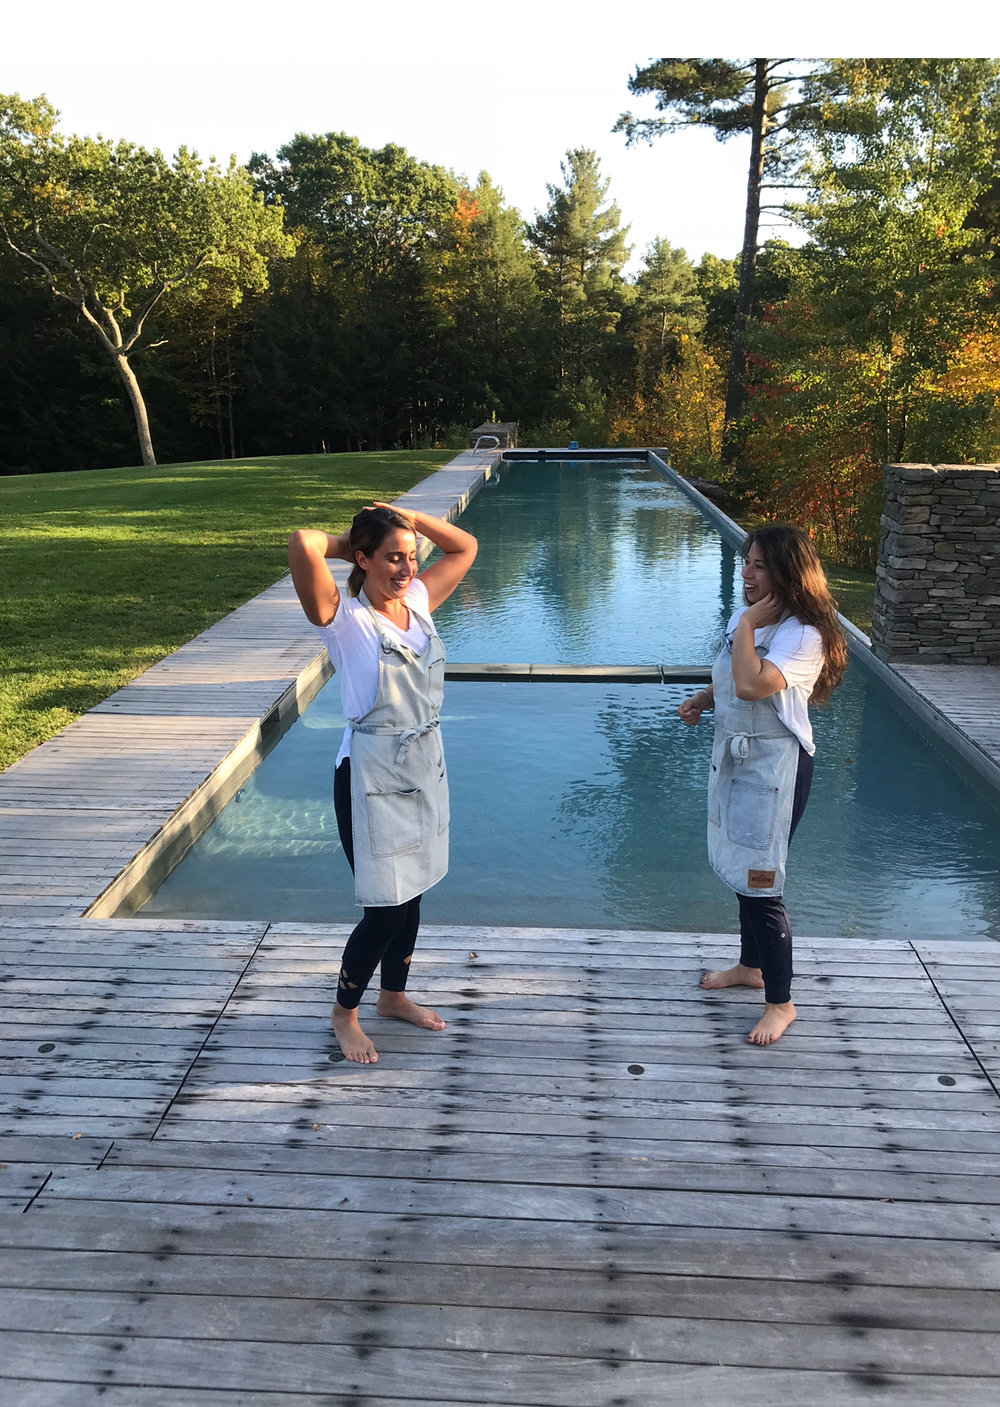 Plant Based Recipes from Our Signature Retreat Menu. Berkshires, MA October 2017